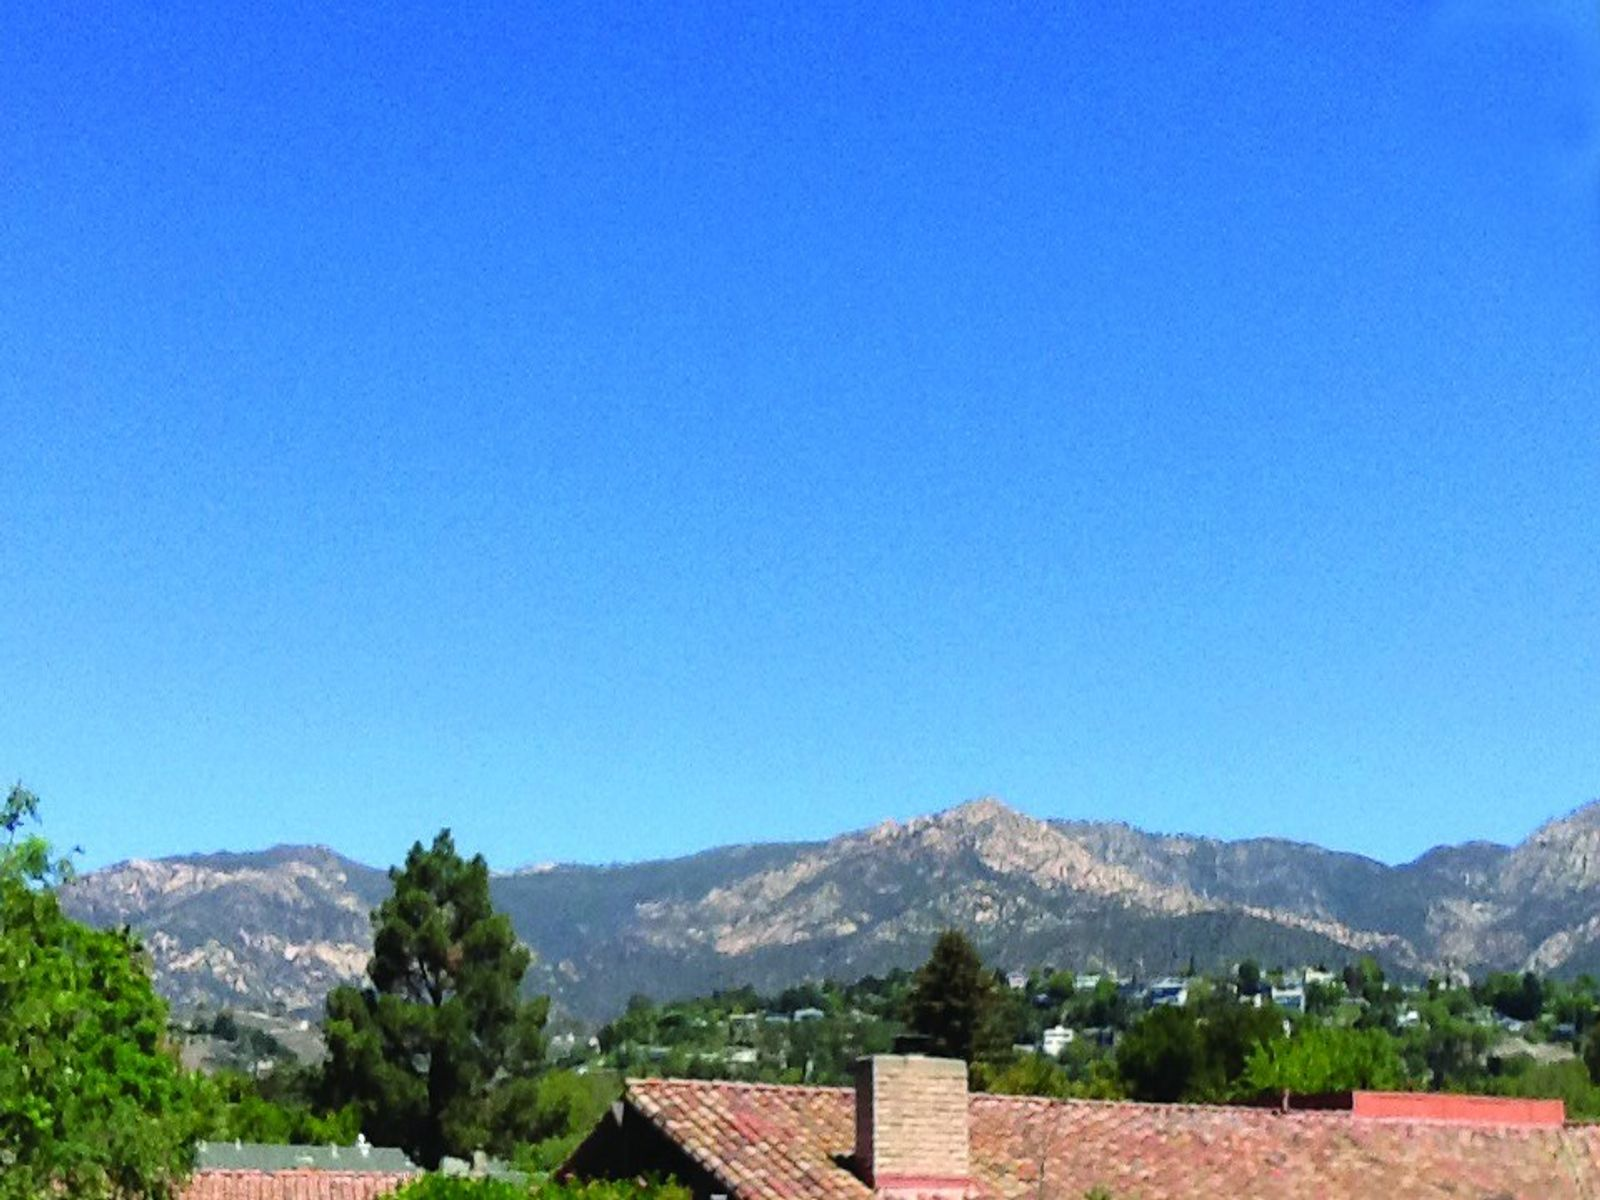 Mountain view from deck